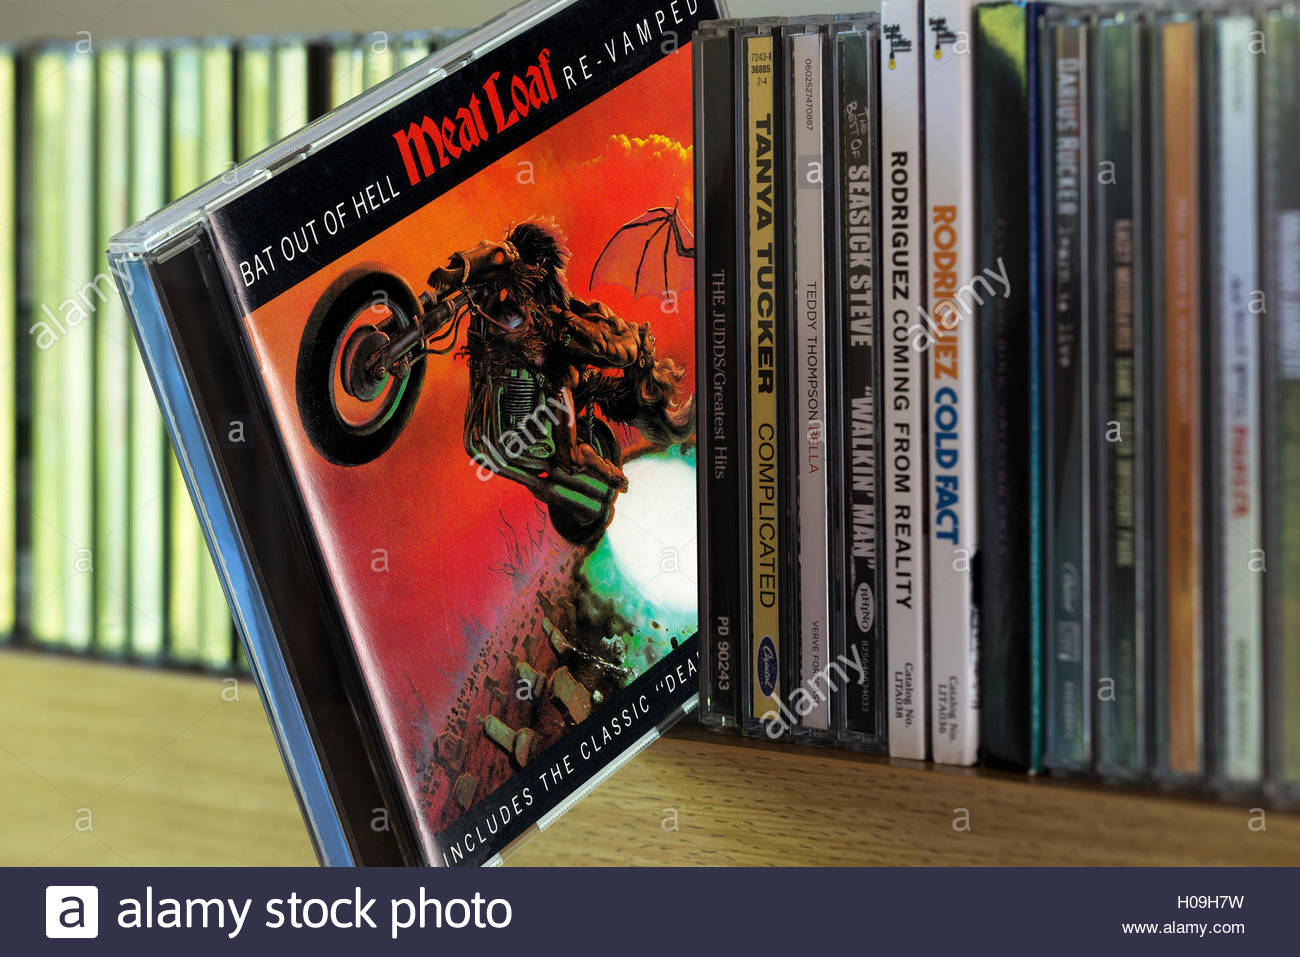 Meat Loaf Album Bat Out Of Hell CD pulled out from among other CD's on a shelf - Stock Image